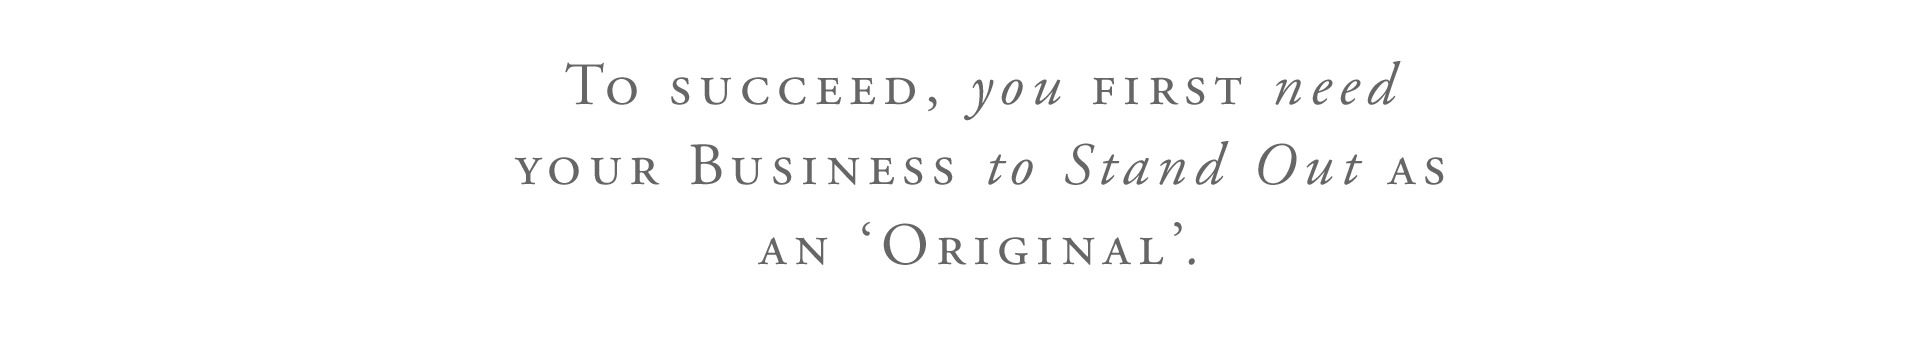 """To Succeed, you FIRST need YOUR BUSINESS to STAND OUT as an 'Original'."""